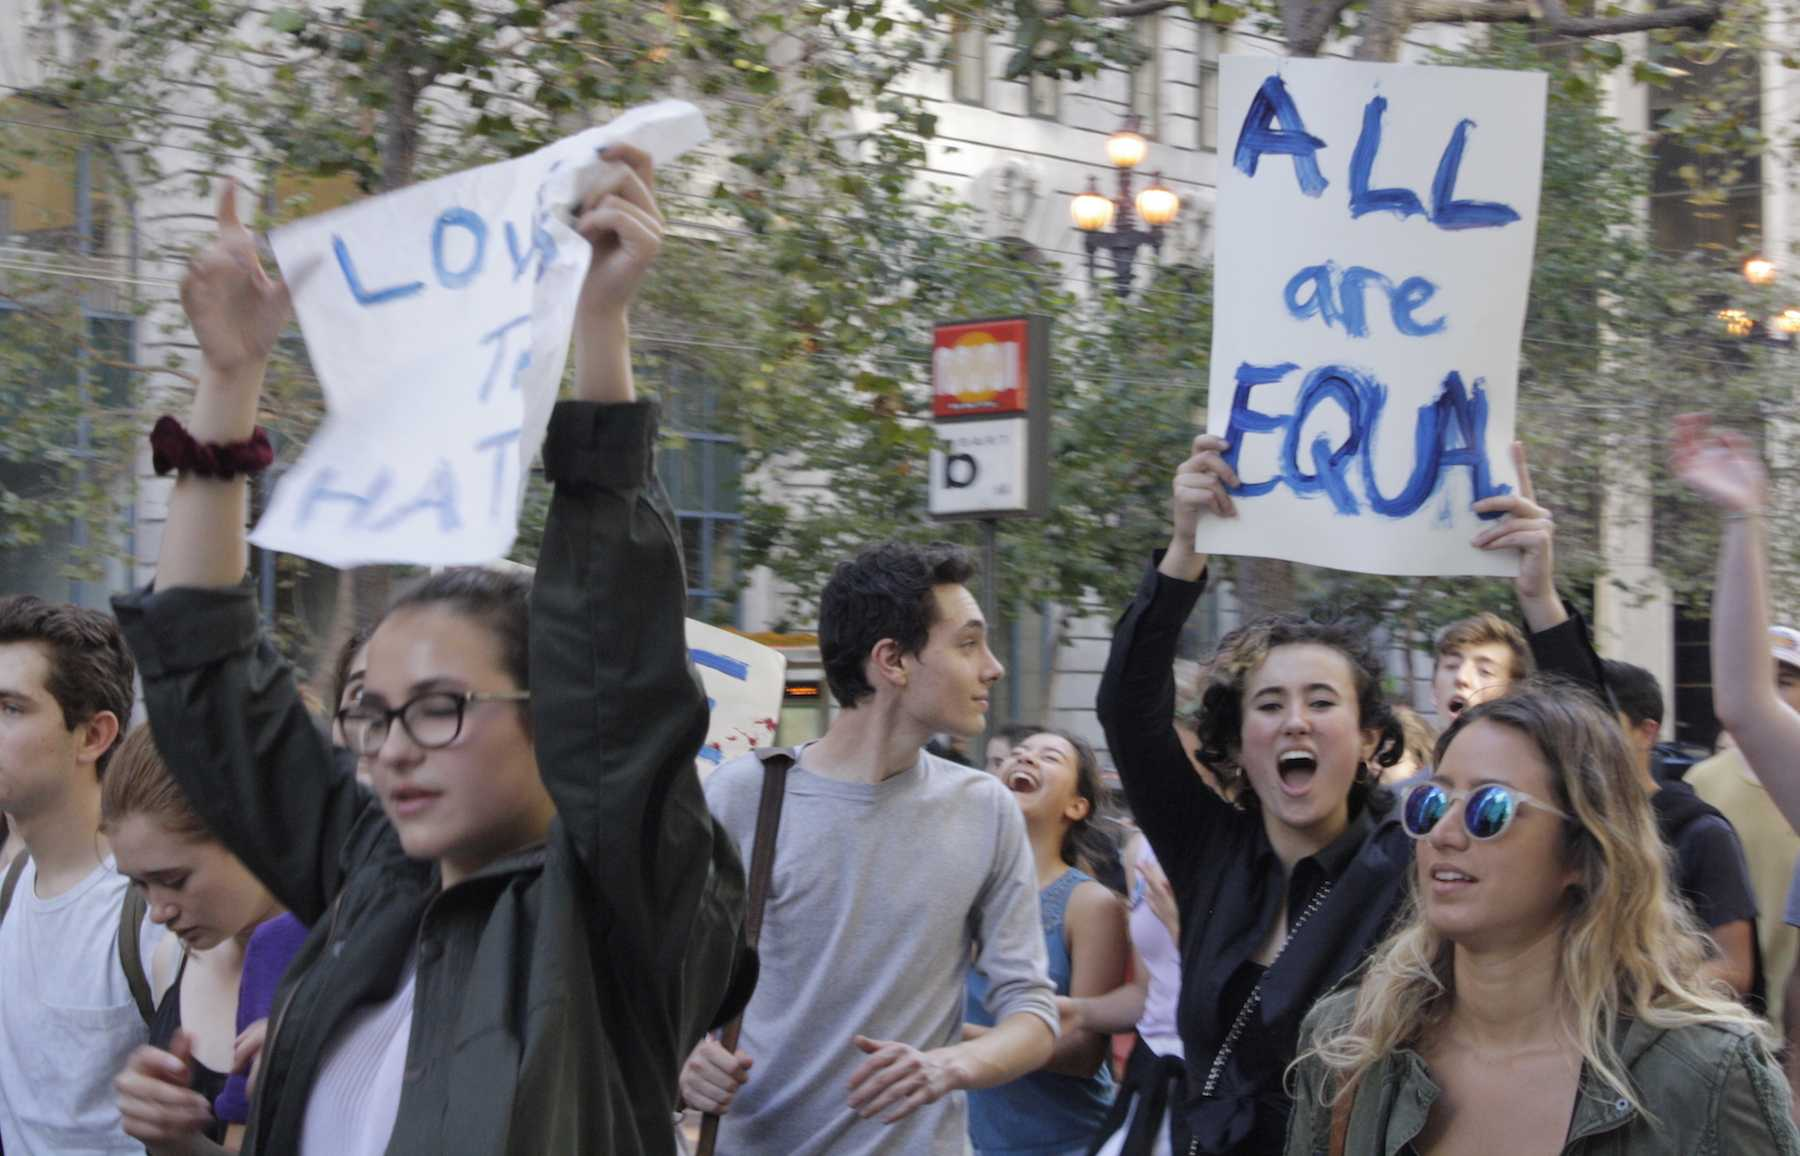 Students from the Urban School of San Francisco protest the election of Donald Trump as the 45th President of the United States in San Francisco's financial district